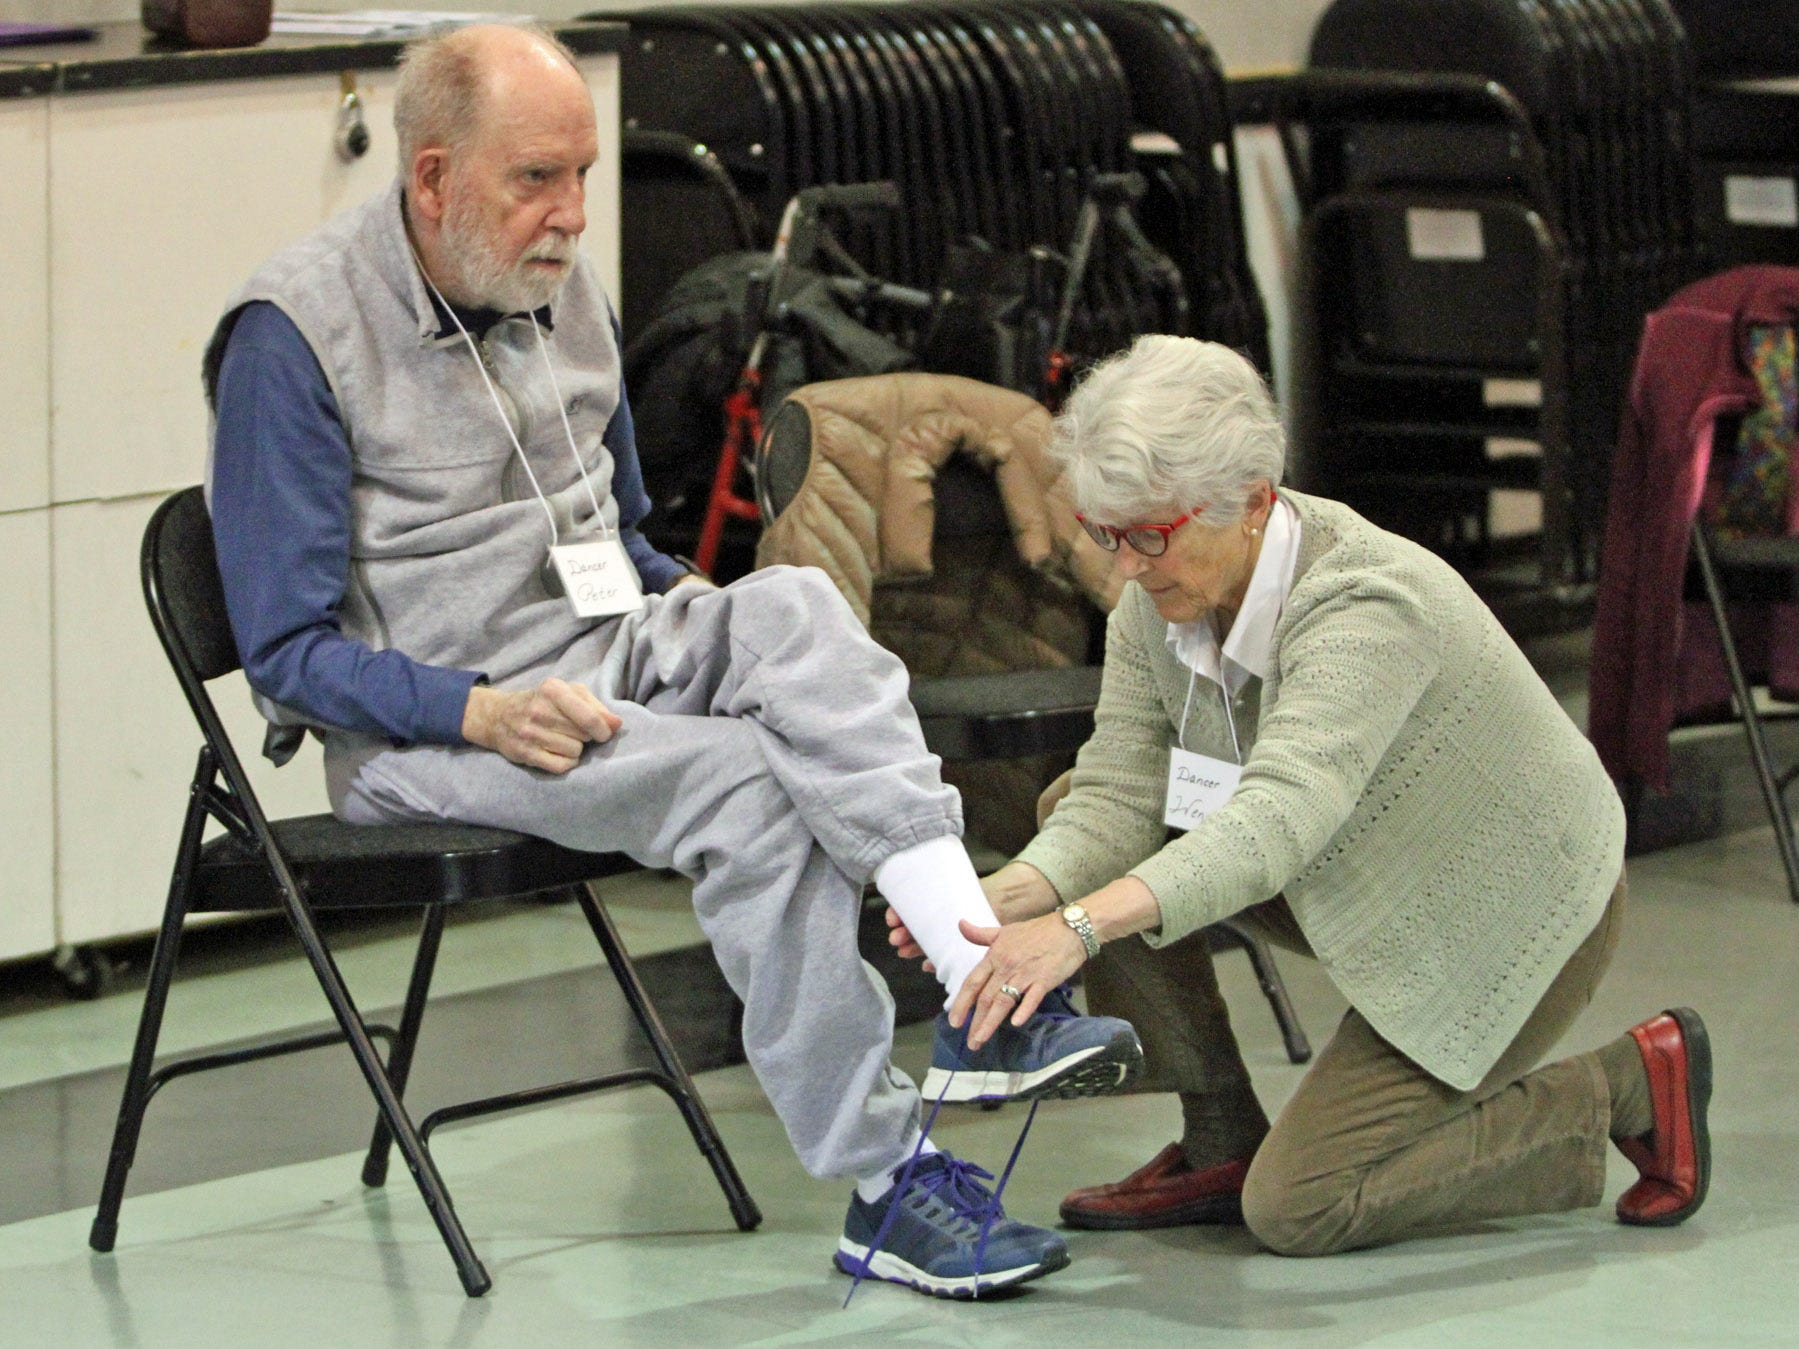 Wendy O'connor laces her husband Peter's shoes before floor exercises at the Dance for Parkinson's class held at the Bainbridge Island Senior Center.